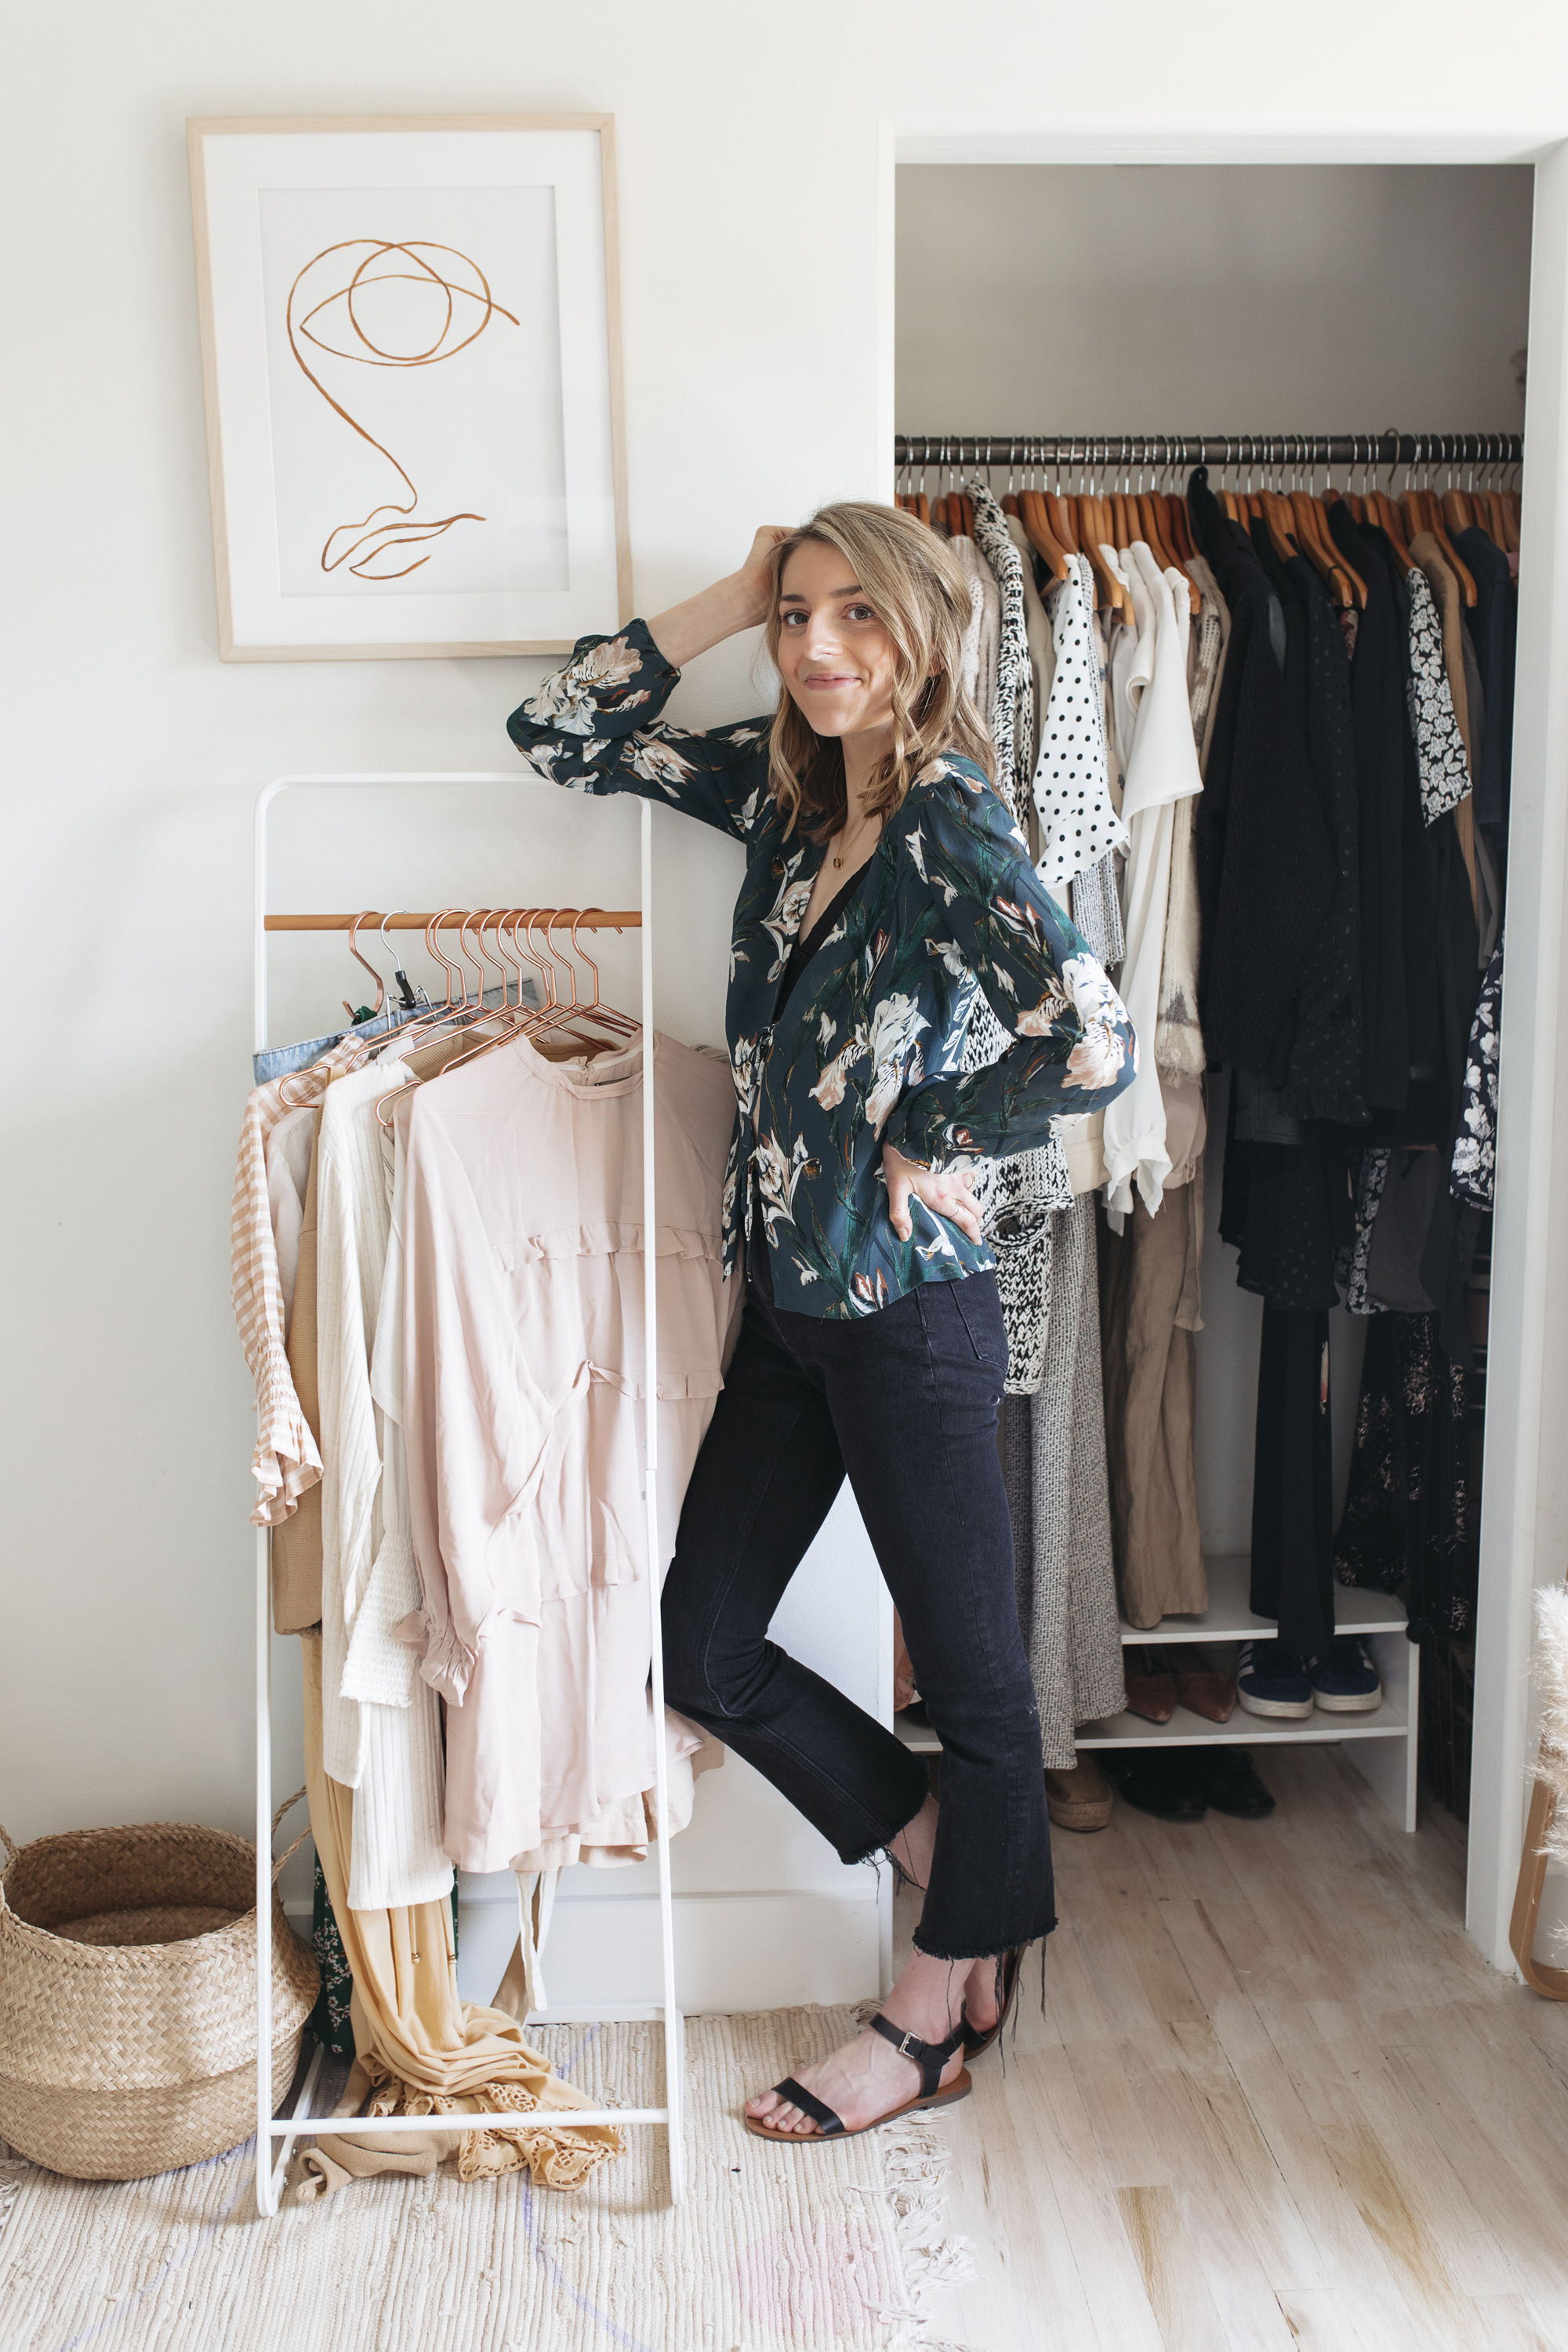 Are you ready to tackle your spring wardrobe!? the transition from the winter season of fashion to spring clothes is one of my favorite times of year to get creative.